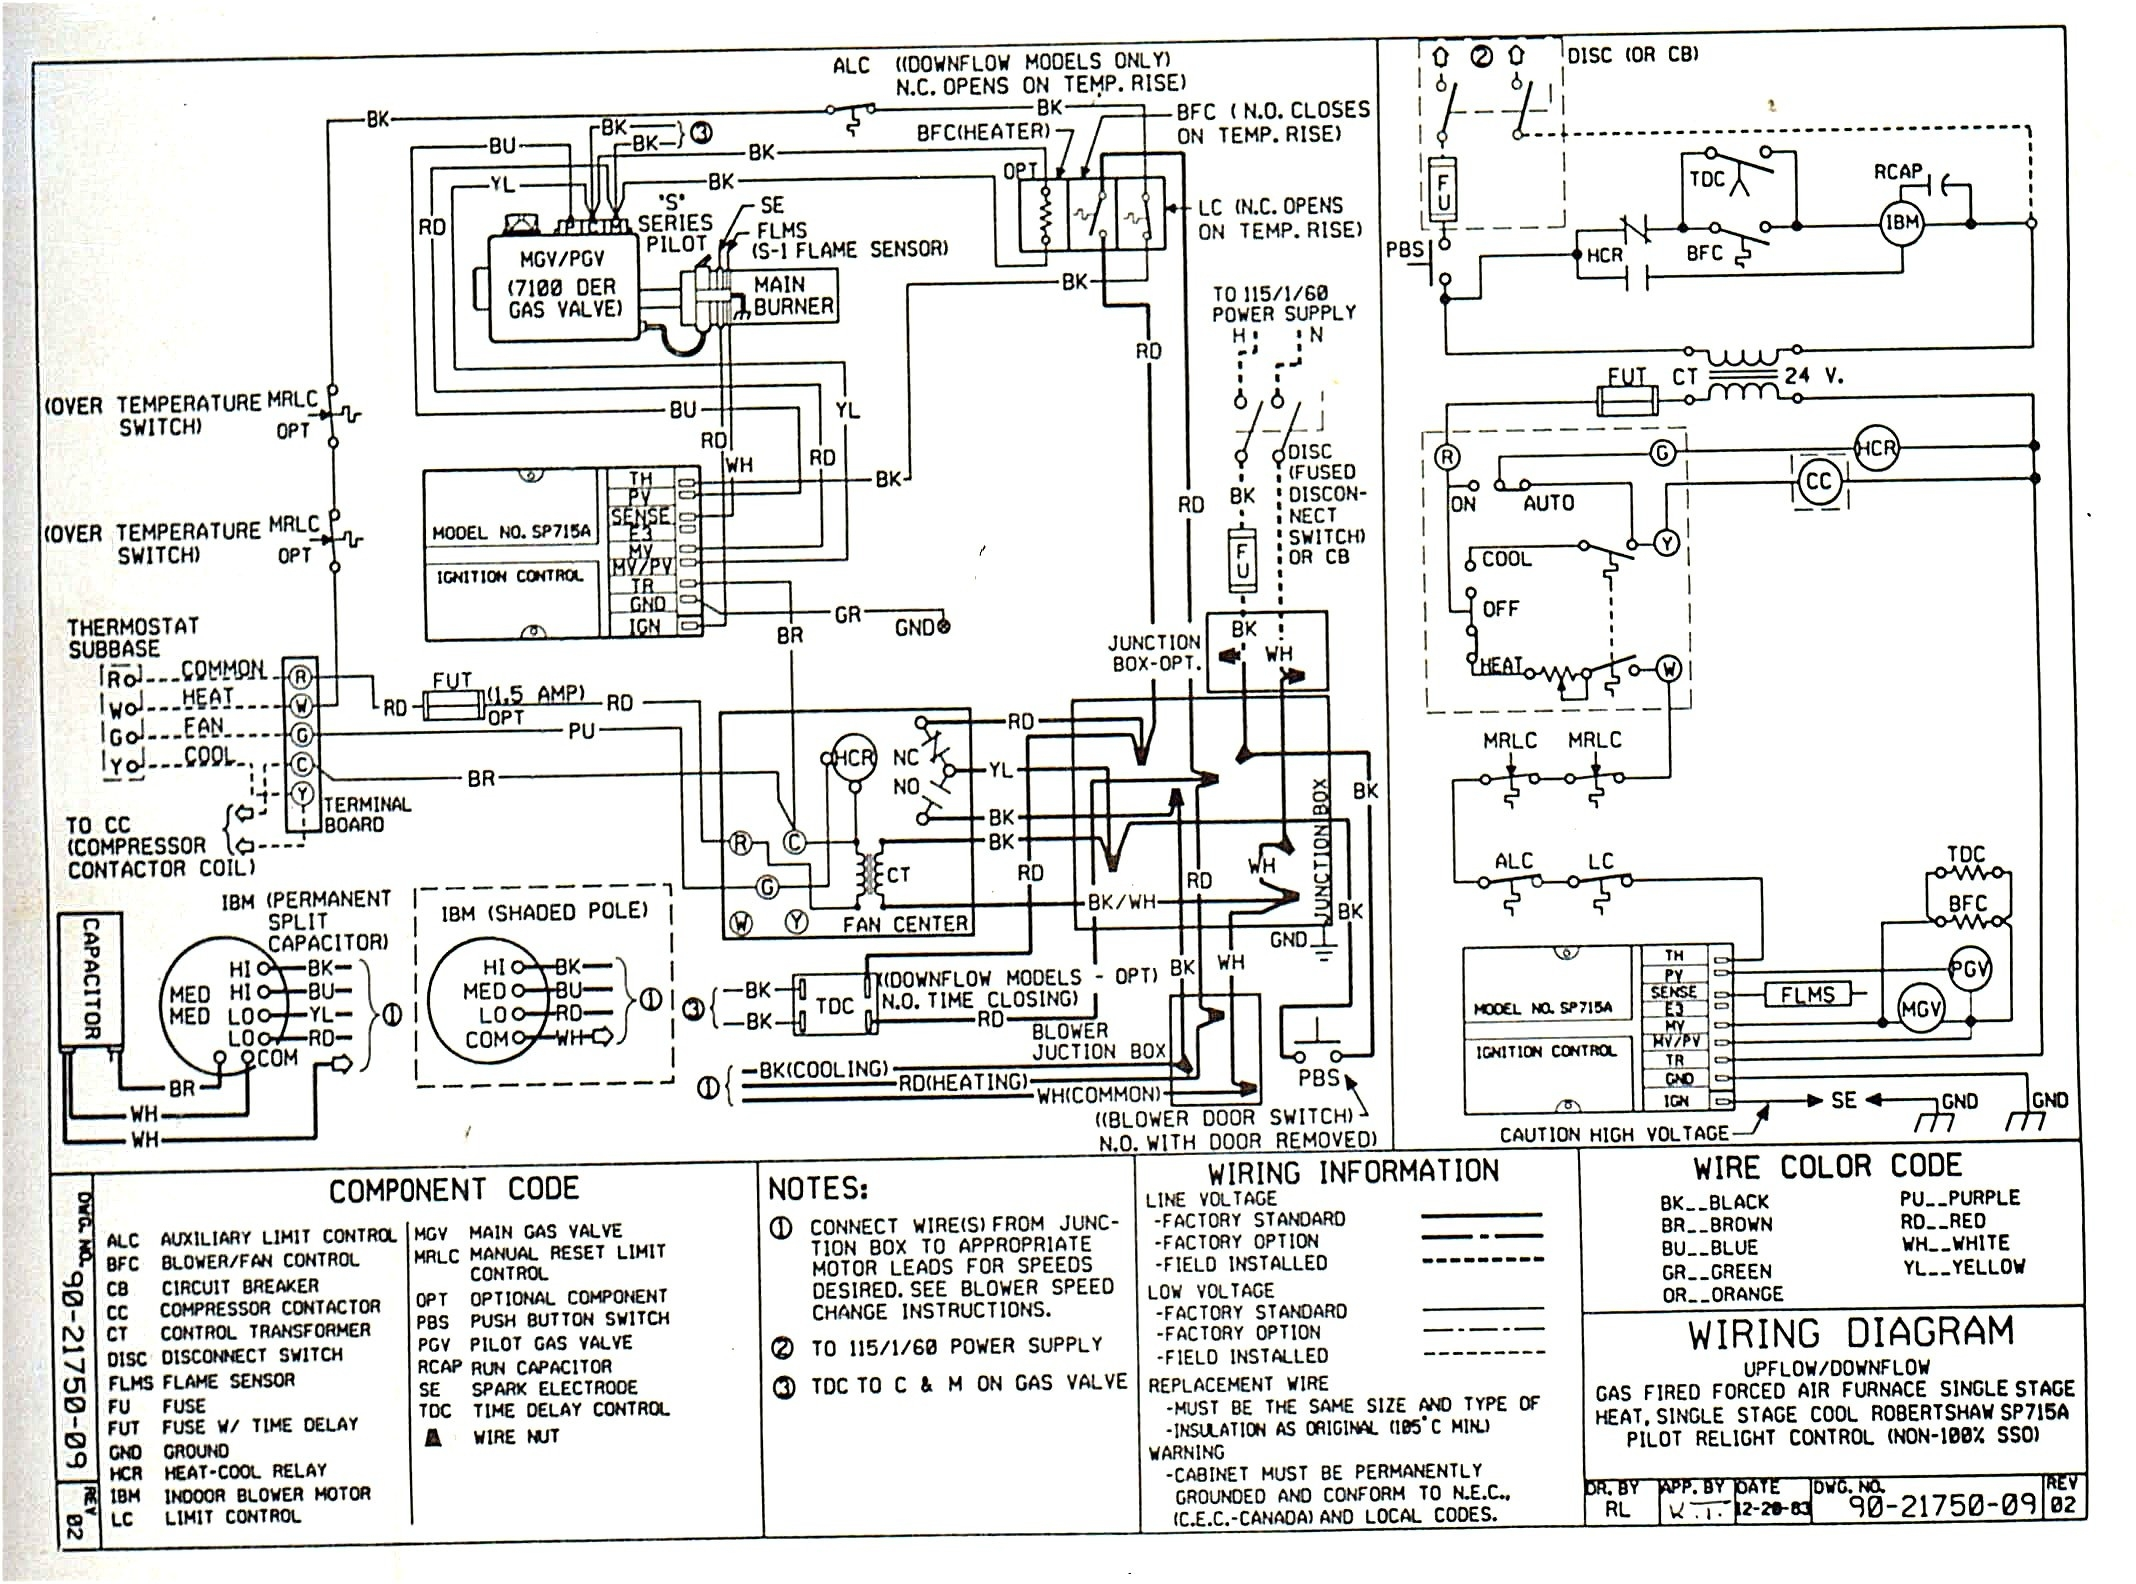 carrier 8000 furnace schematic